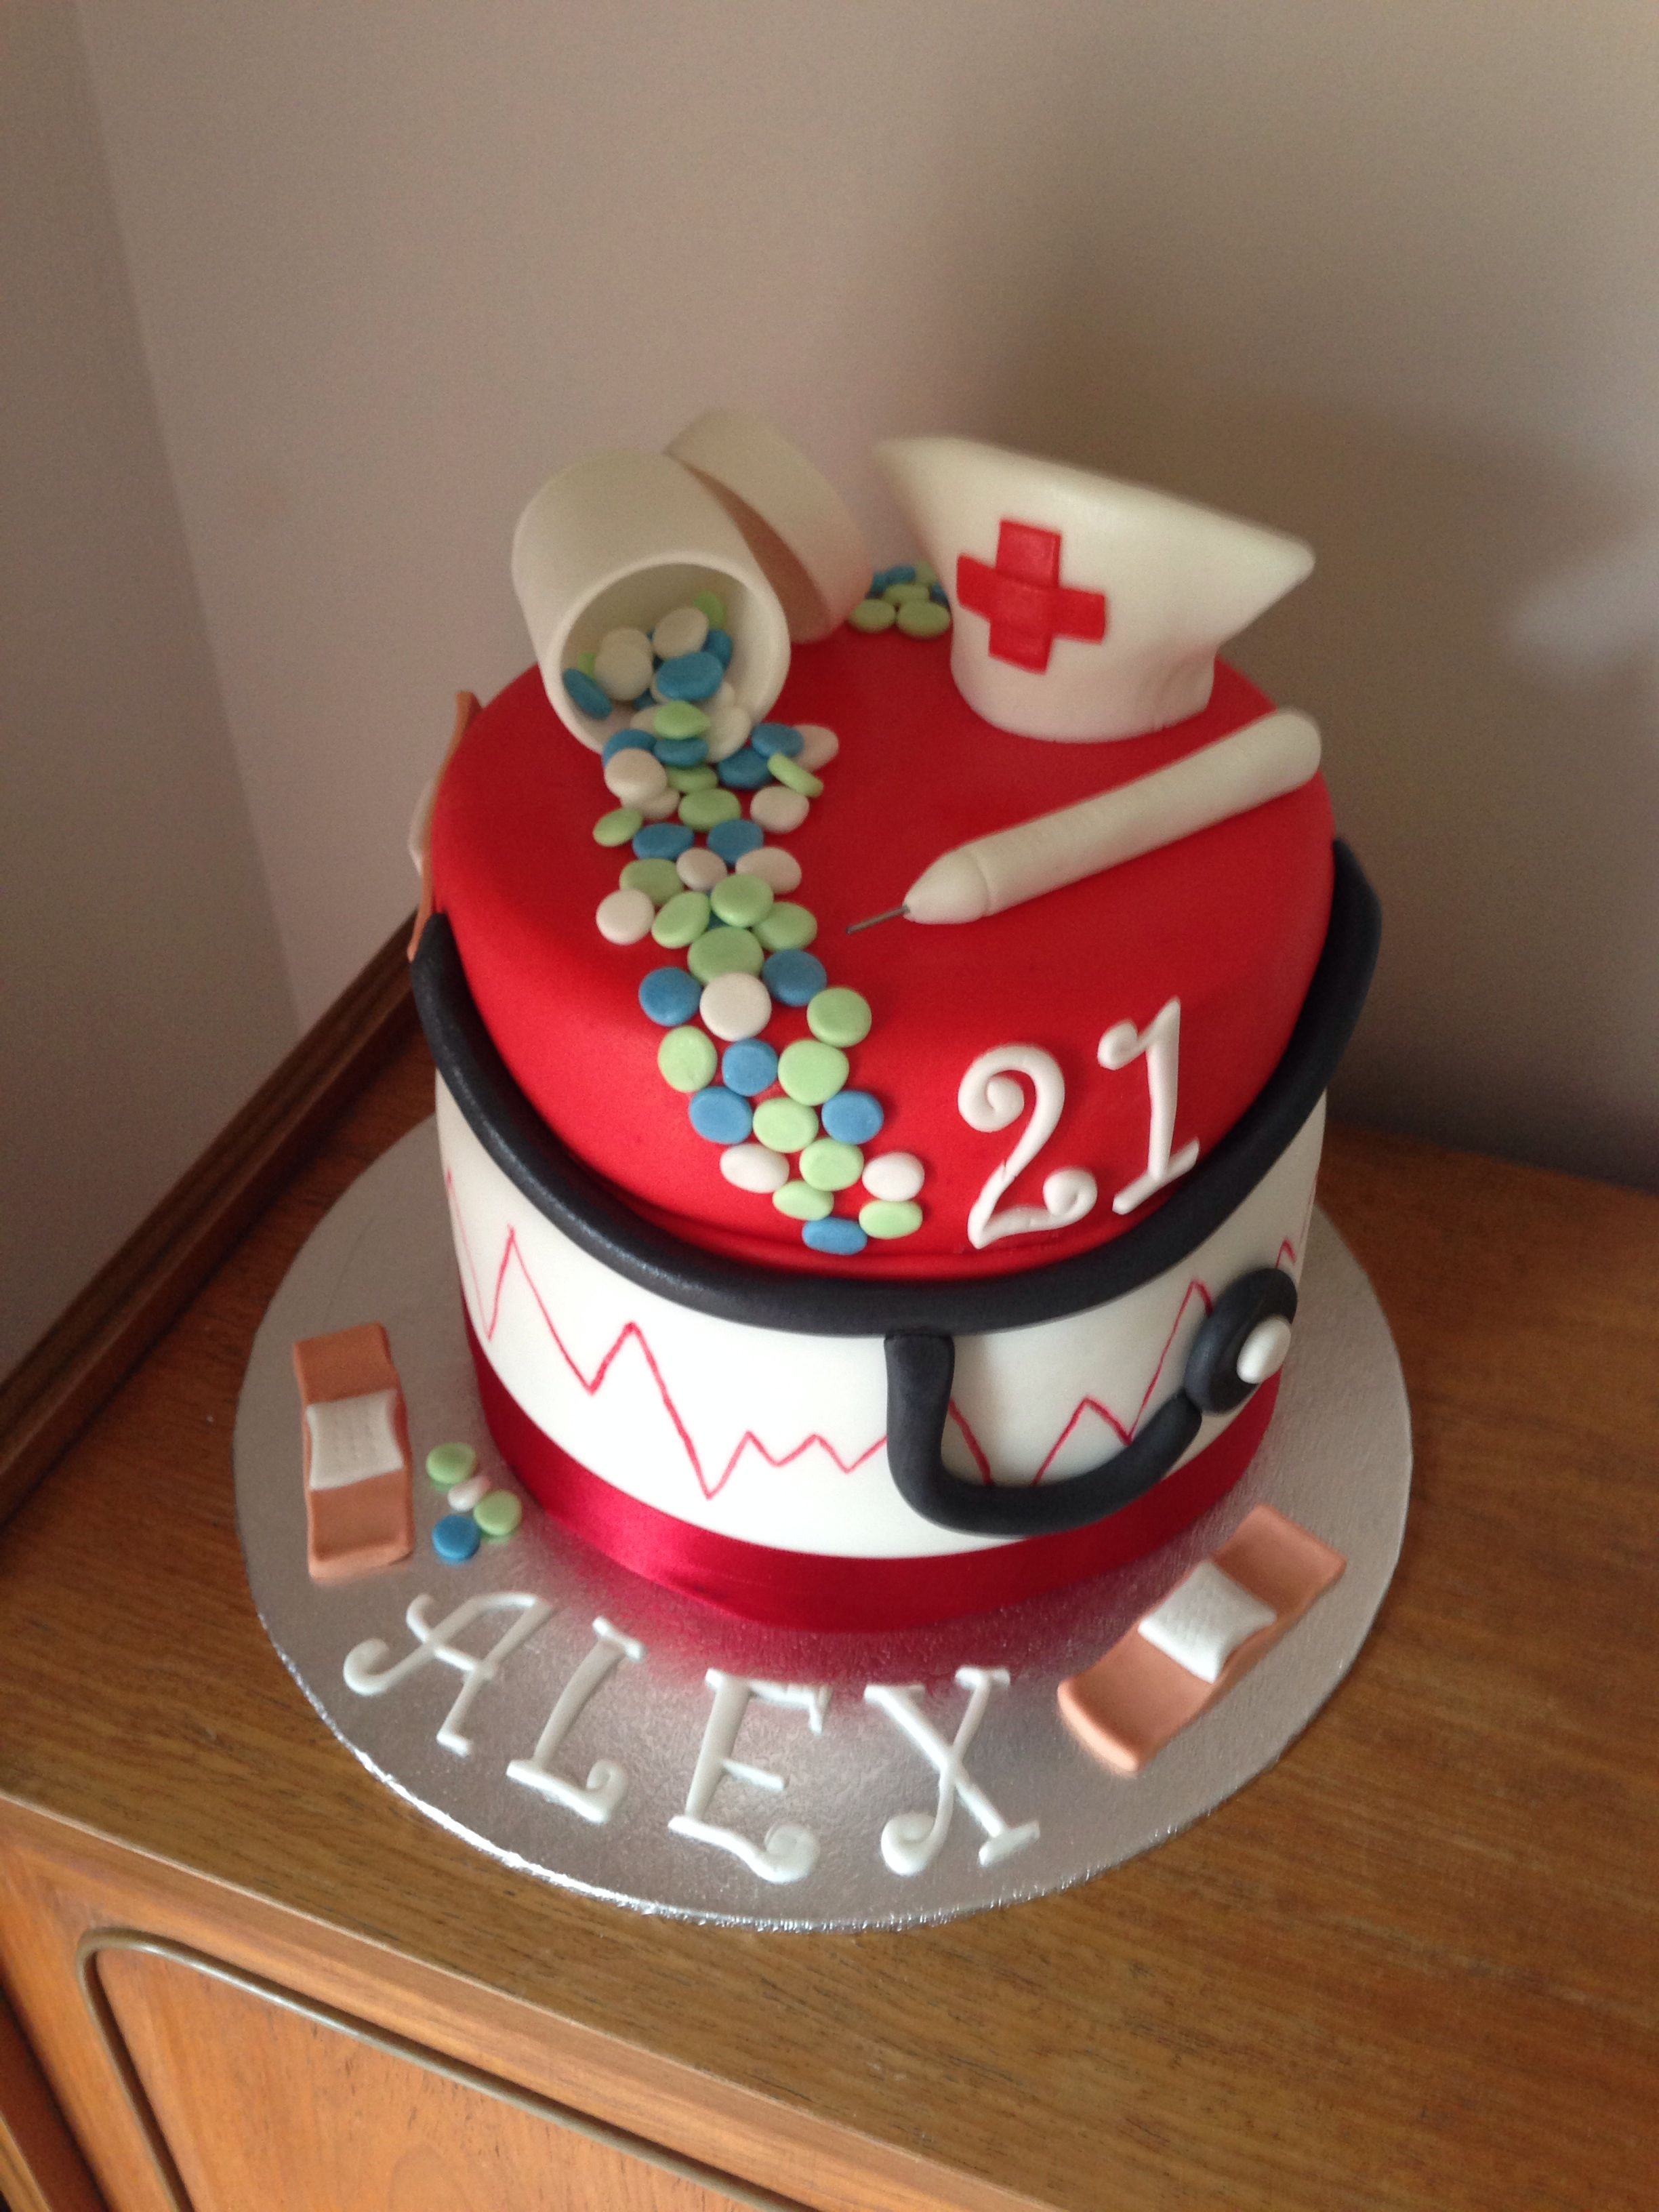 Pin By Brittany Lowden On Bakinng 21st Birthday Cakes My Birthday Cake Themed Cakes